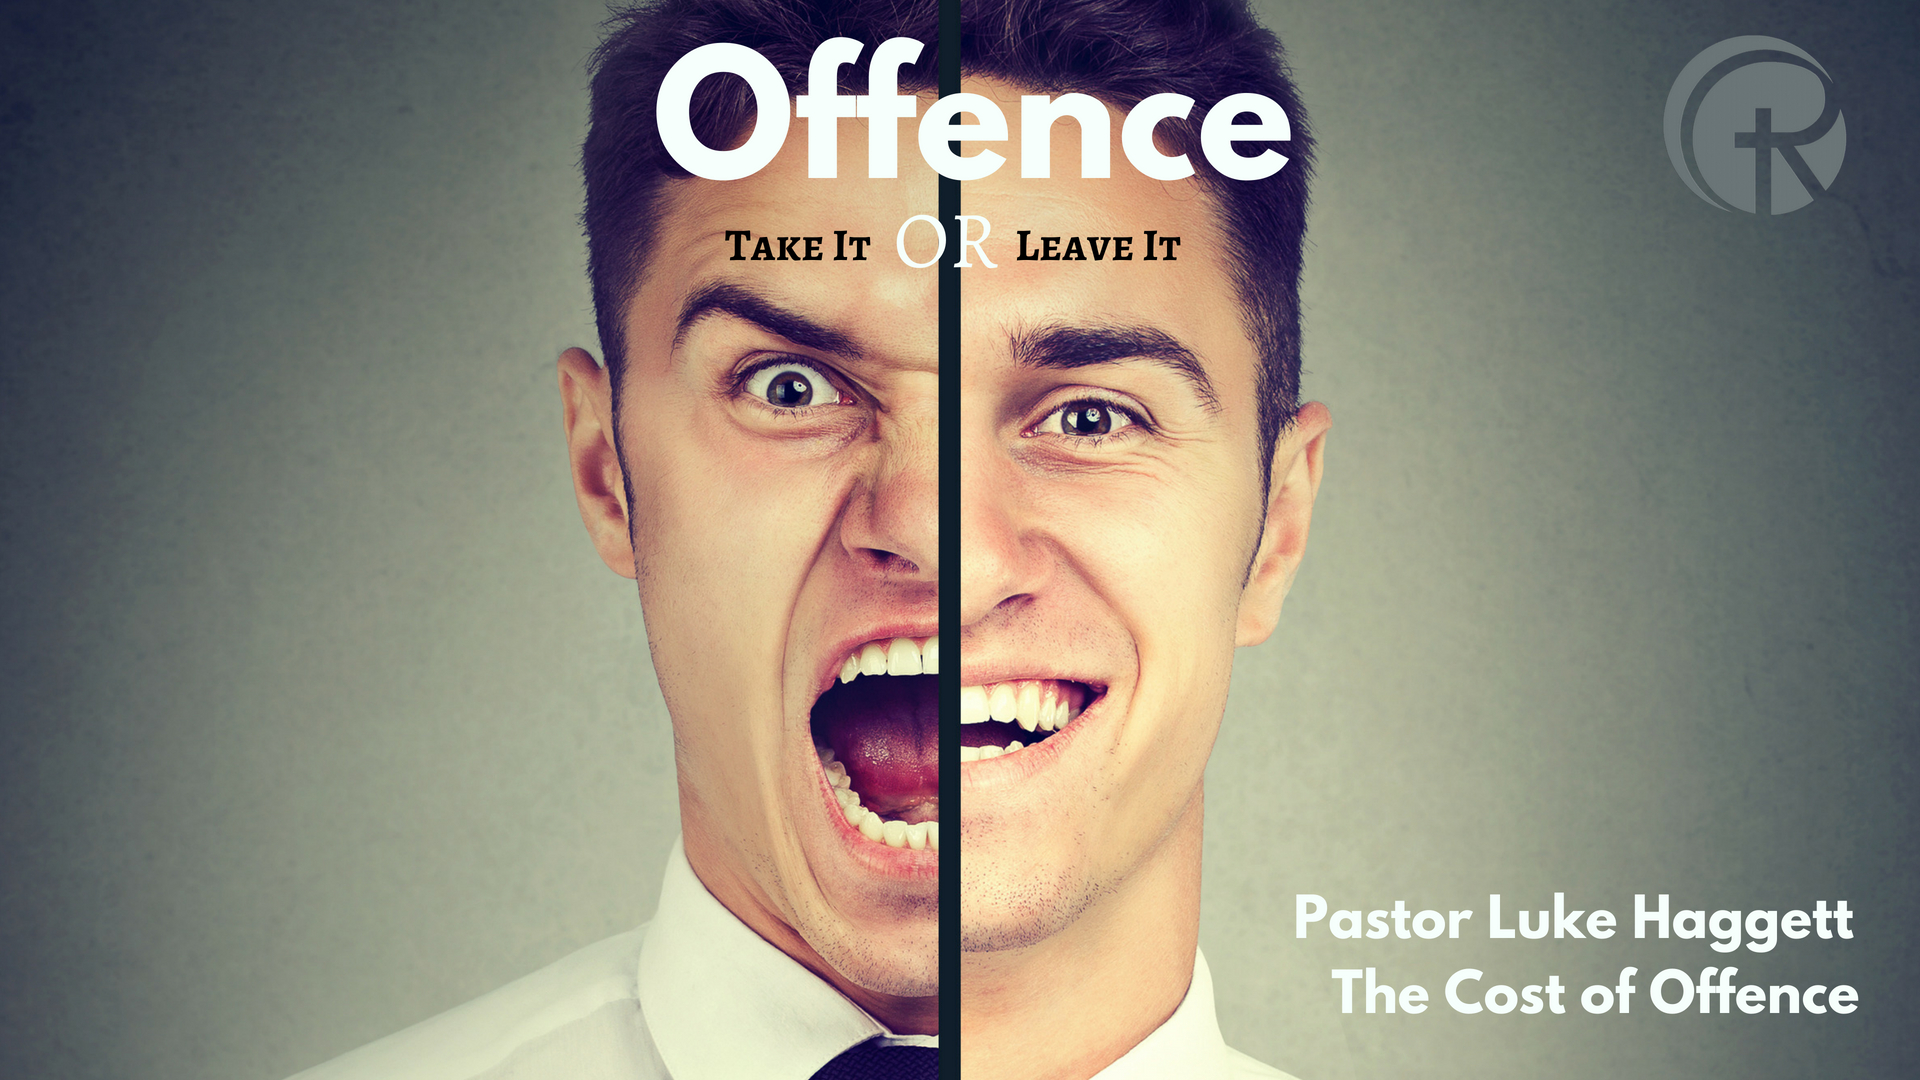 The Cost of Offence